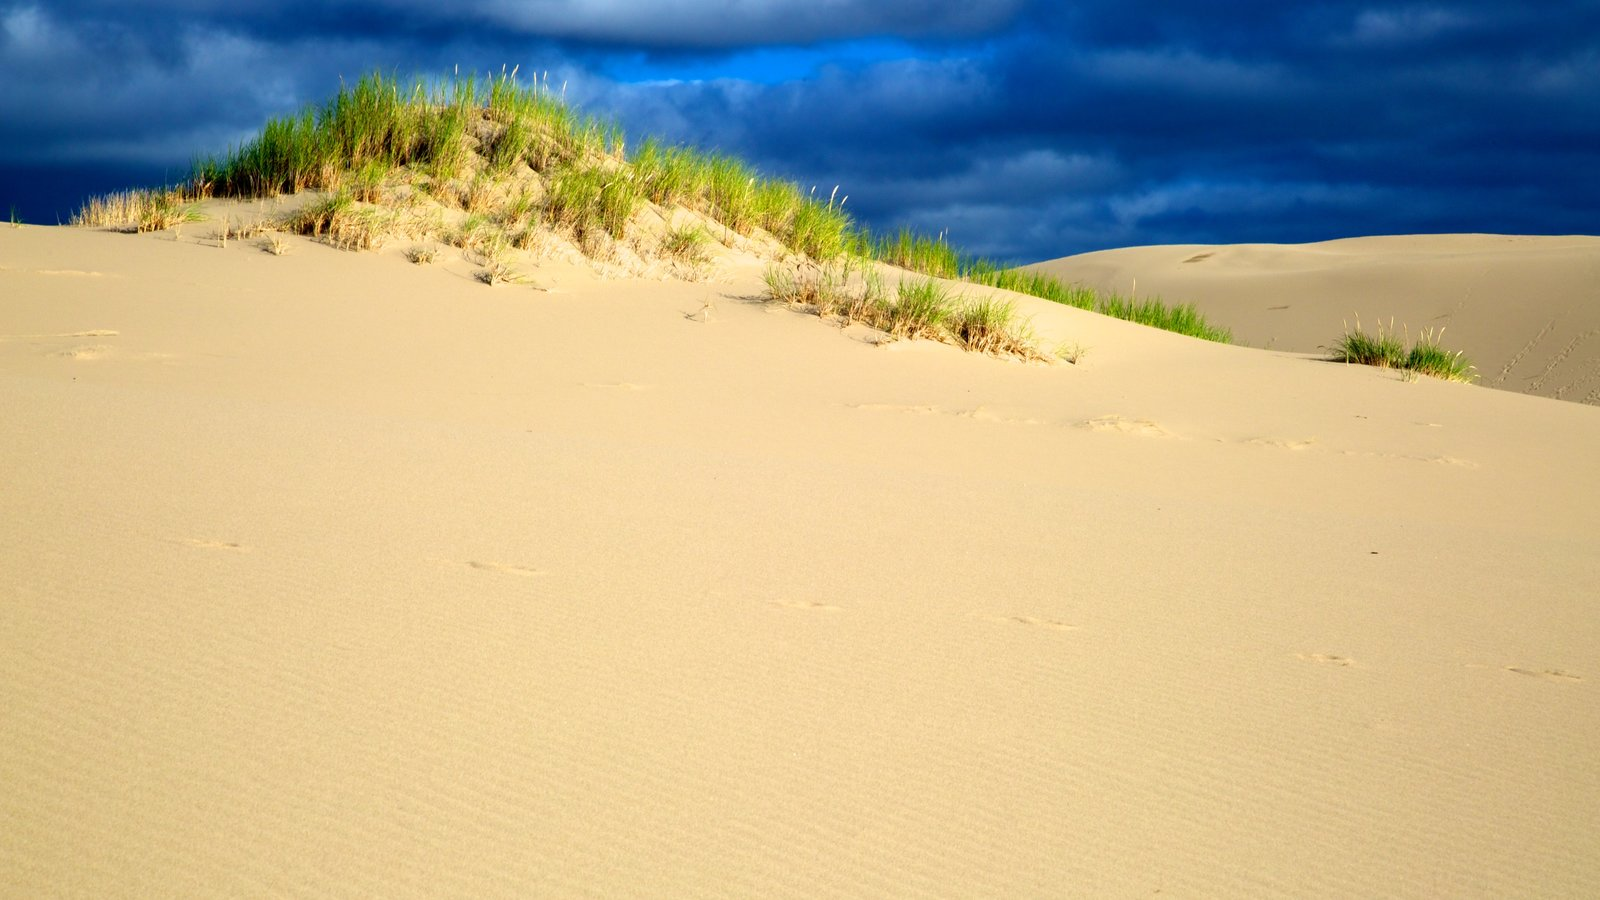 Oregon Dunes National Recreation Area which includes landscape views and desert views